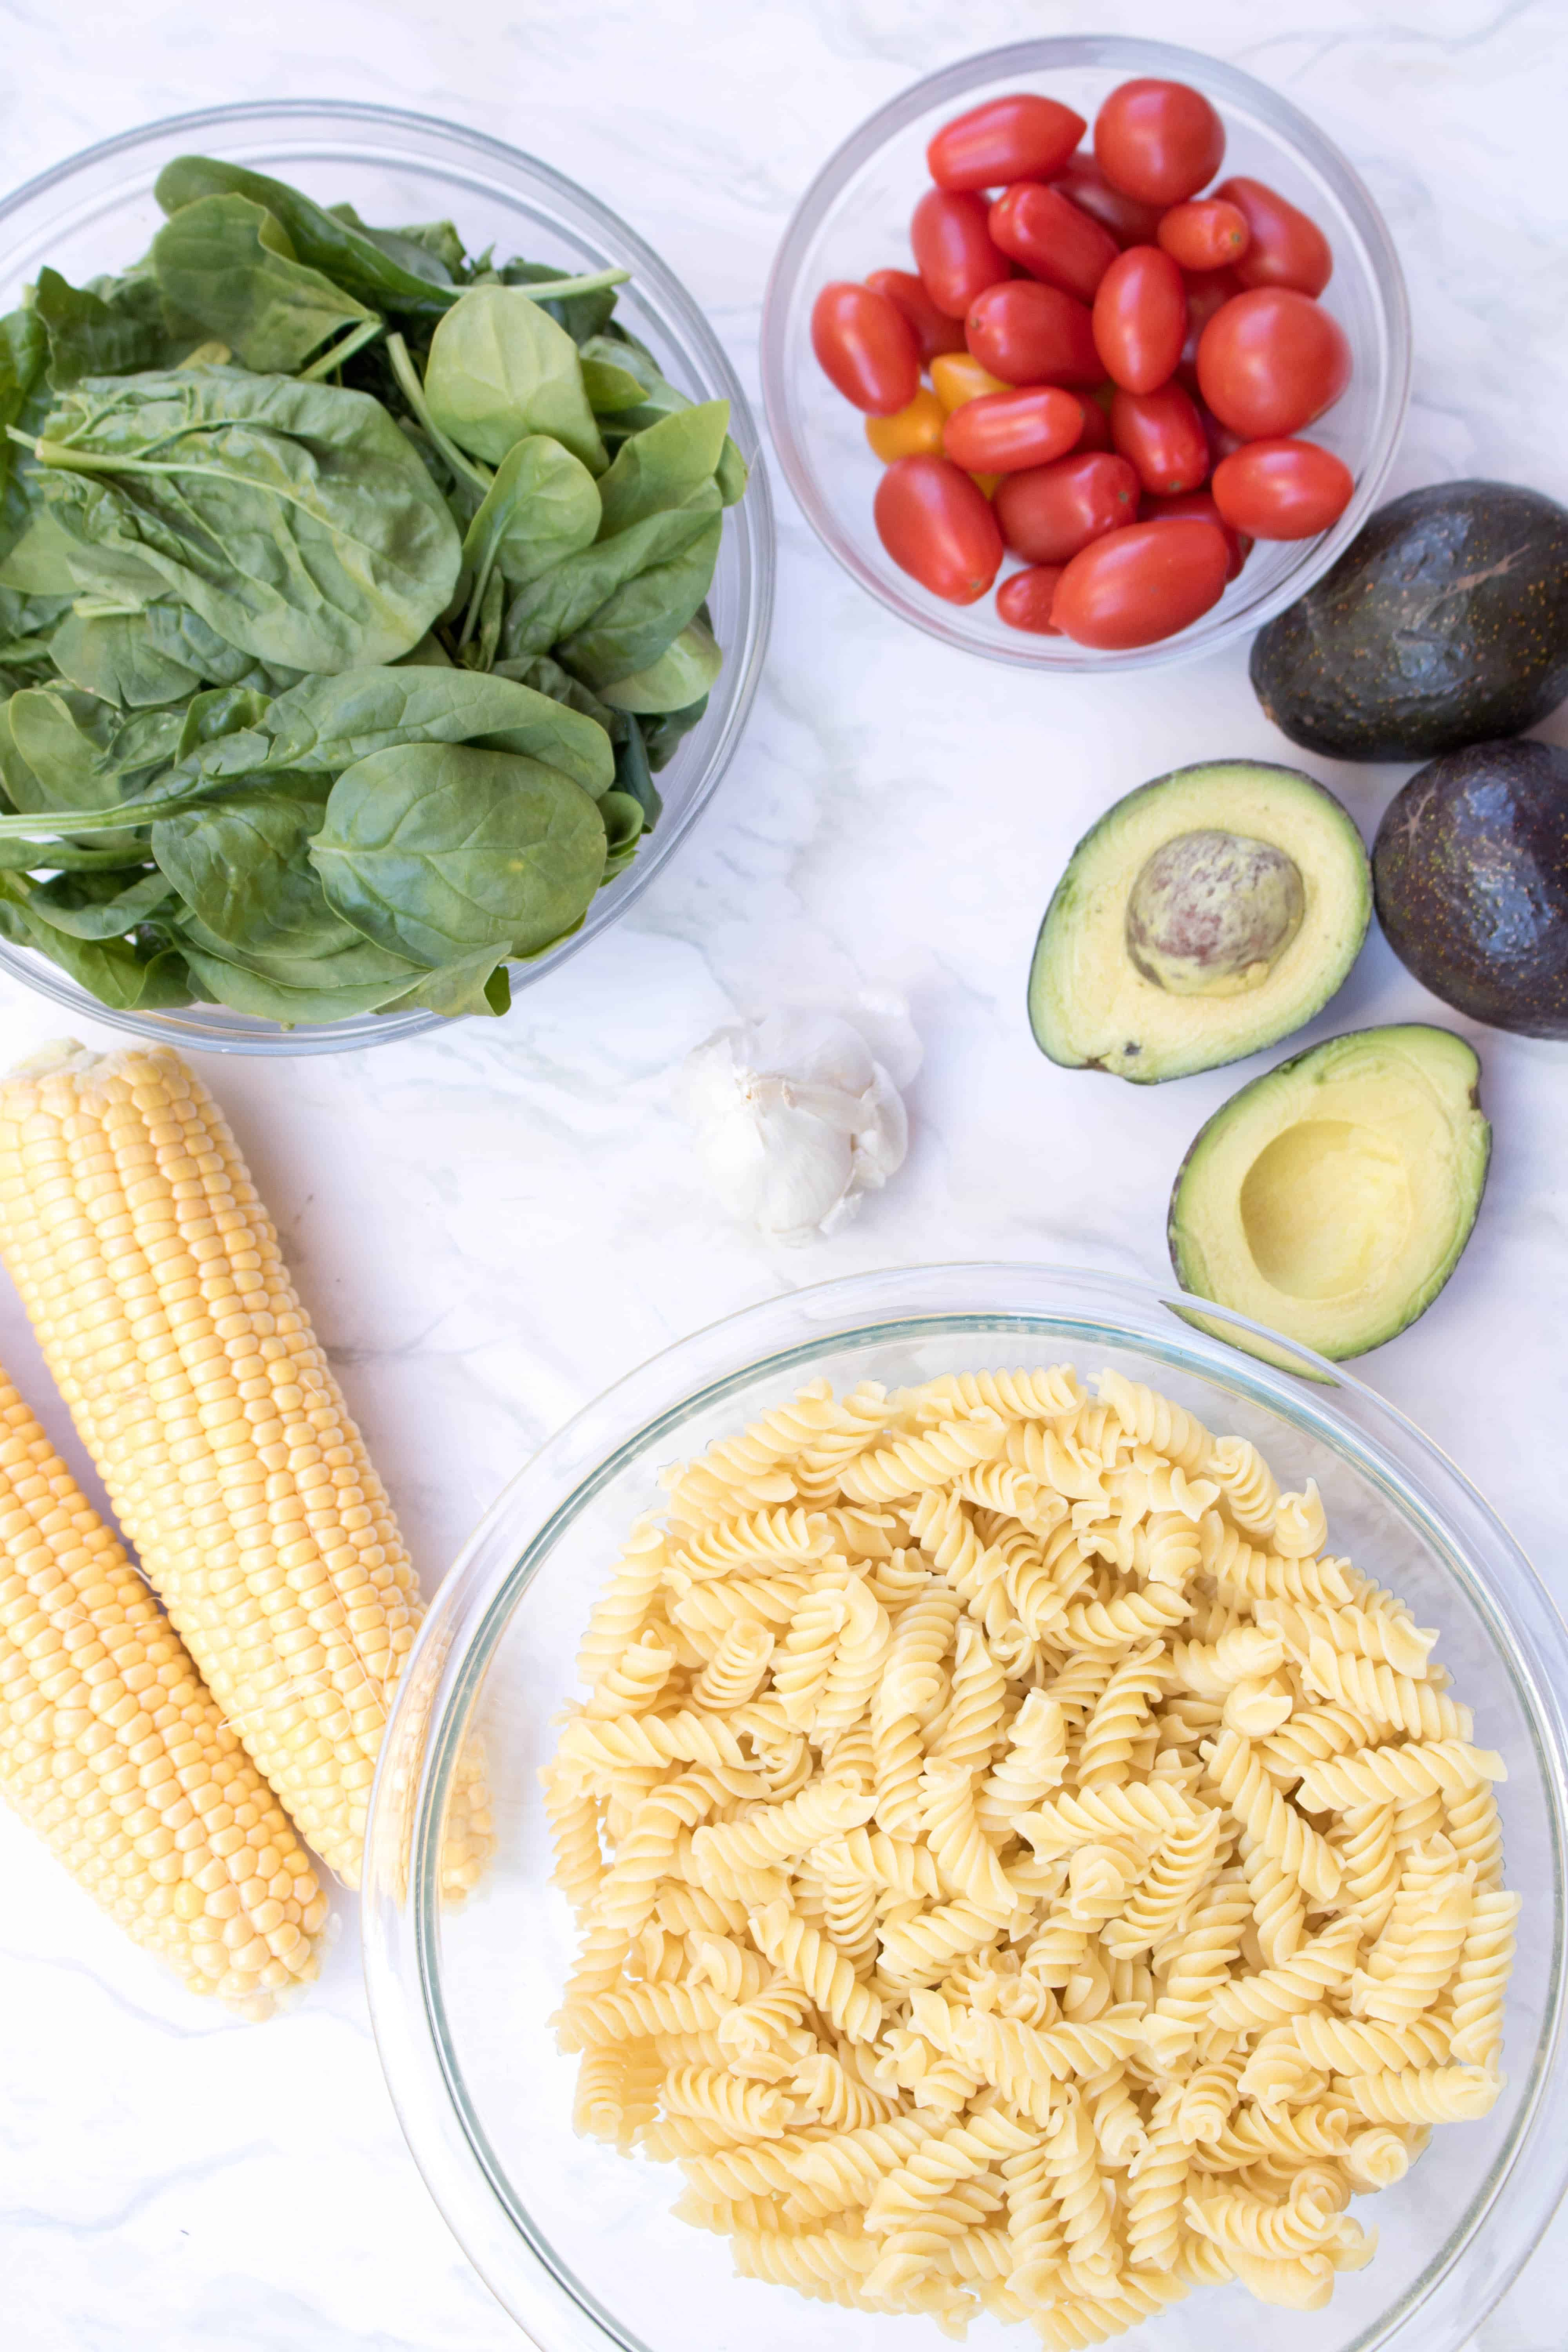 This Avocado Pasta salad is one that'll be different than all the others on the cookout table.  It's creamy, bright, packed full of (hidden) spinach, and it just happens to be vegan friendly!